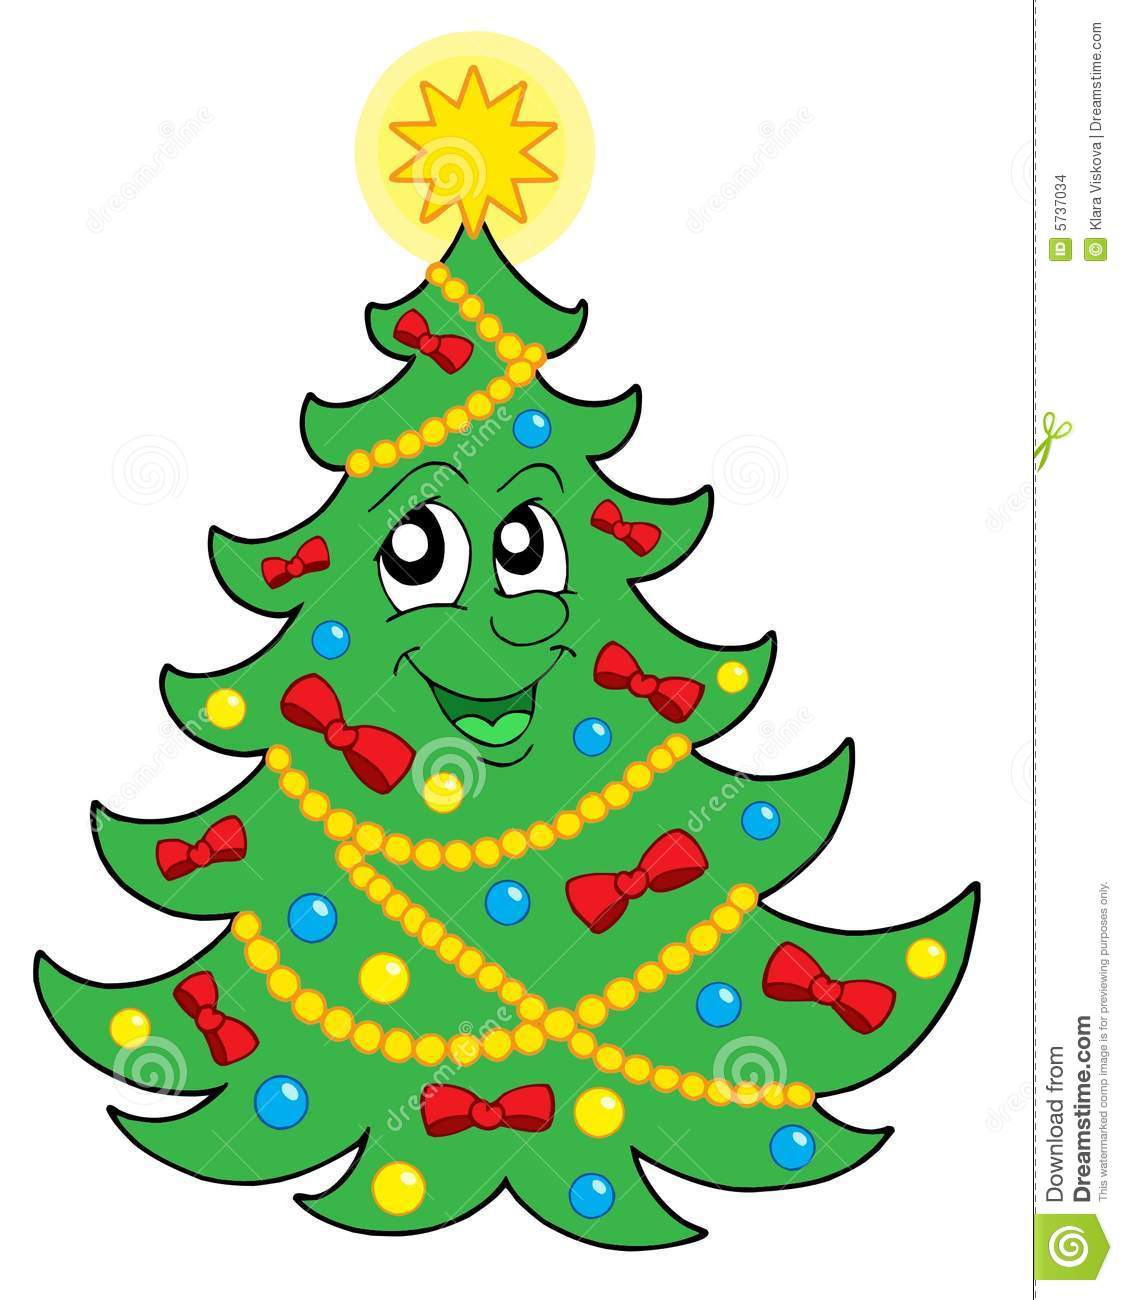 Smiling Christmas Tree 2 Vector Stock Vector - Illustration of draw ...